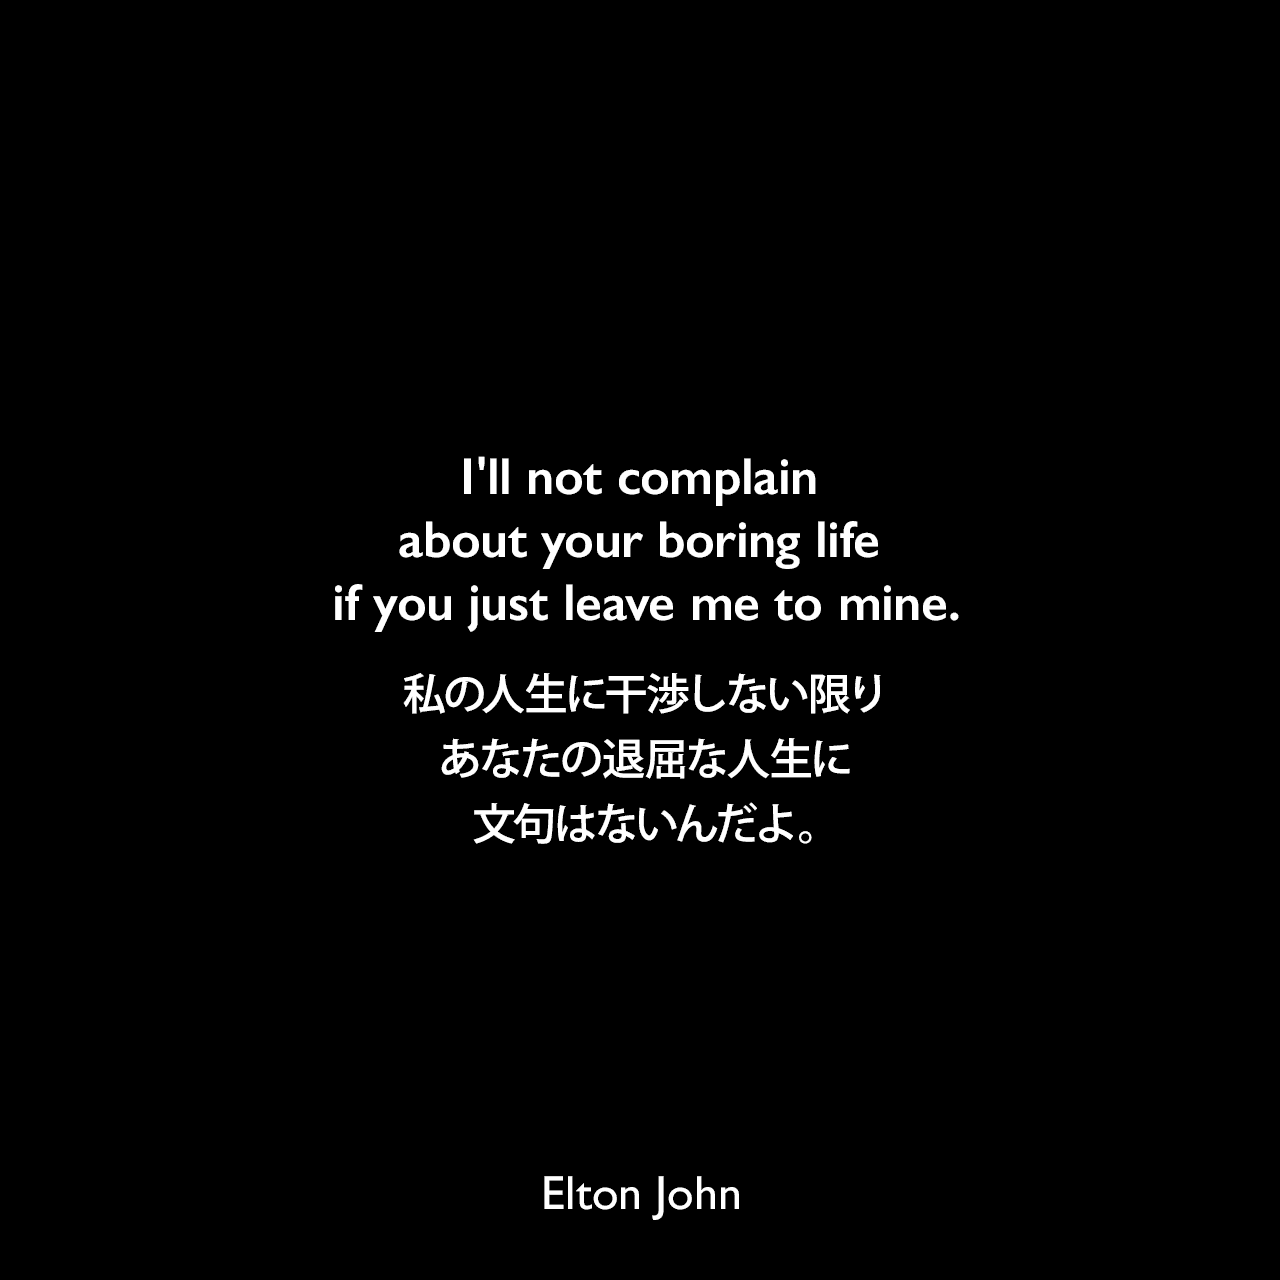 I'll not complain about your boring life if you just leave me to mine.私の人生に干渉しない限りあなたの退屈な人生に文句はないんだよ。Elton John